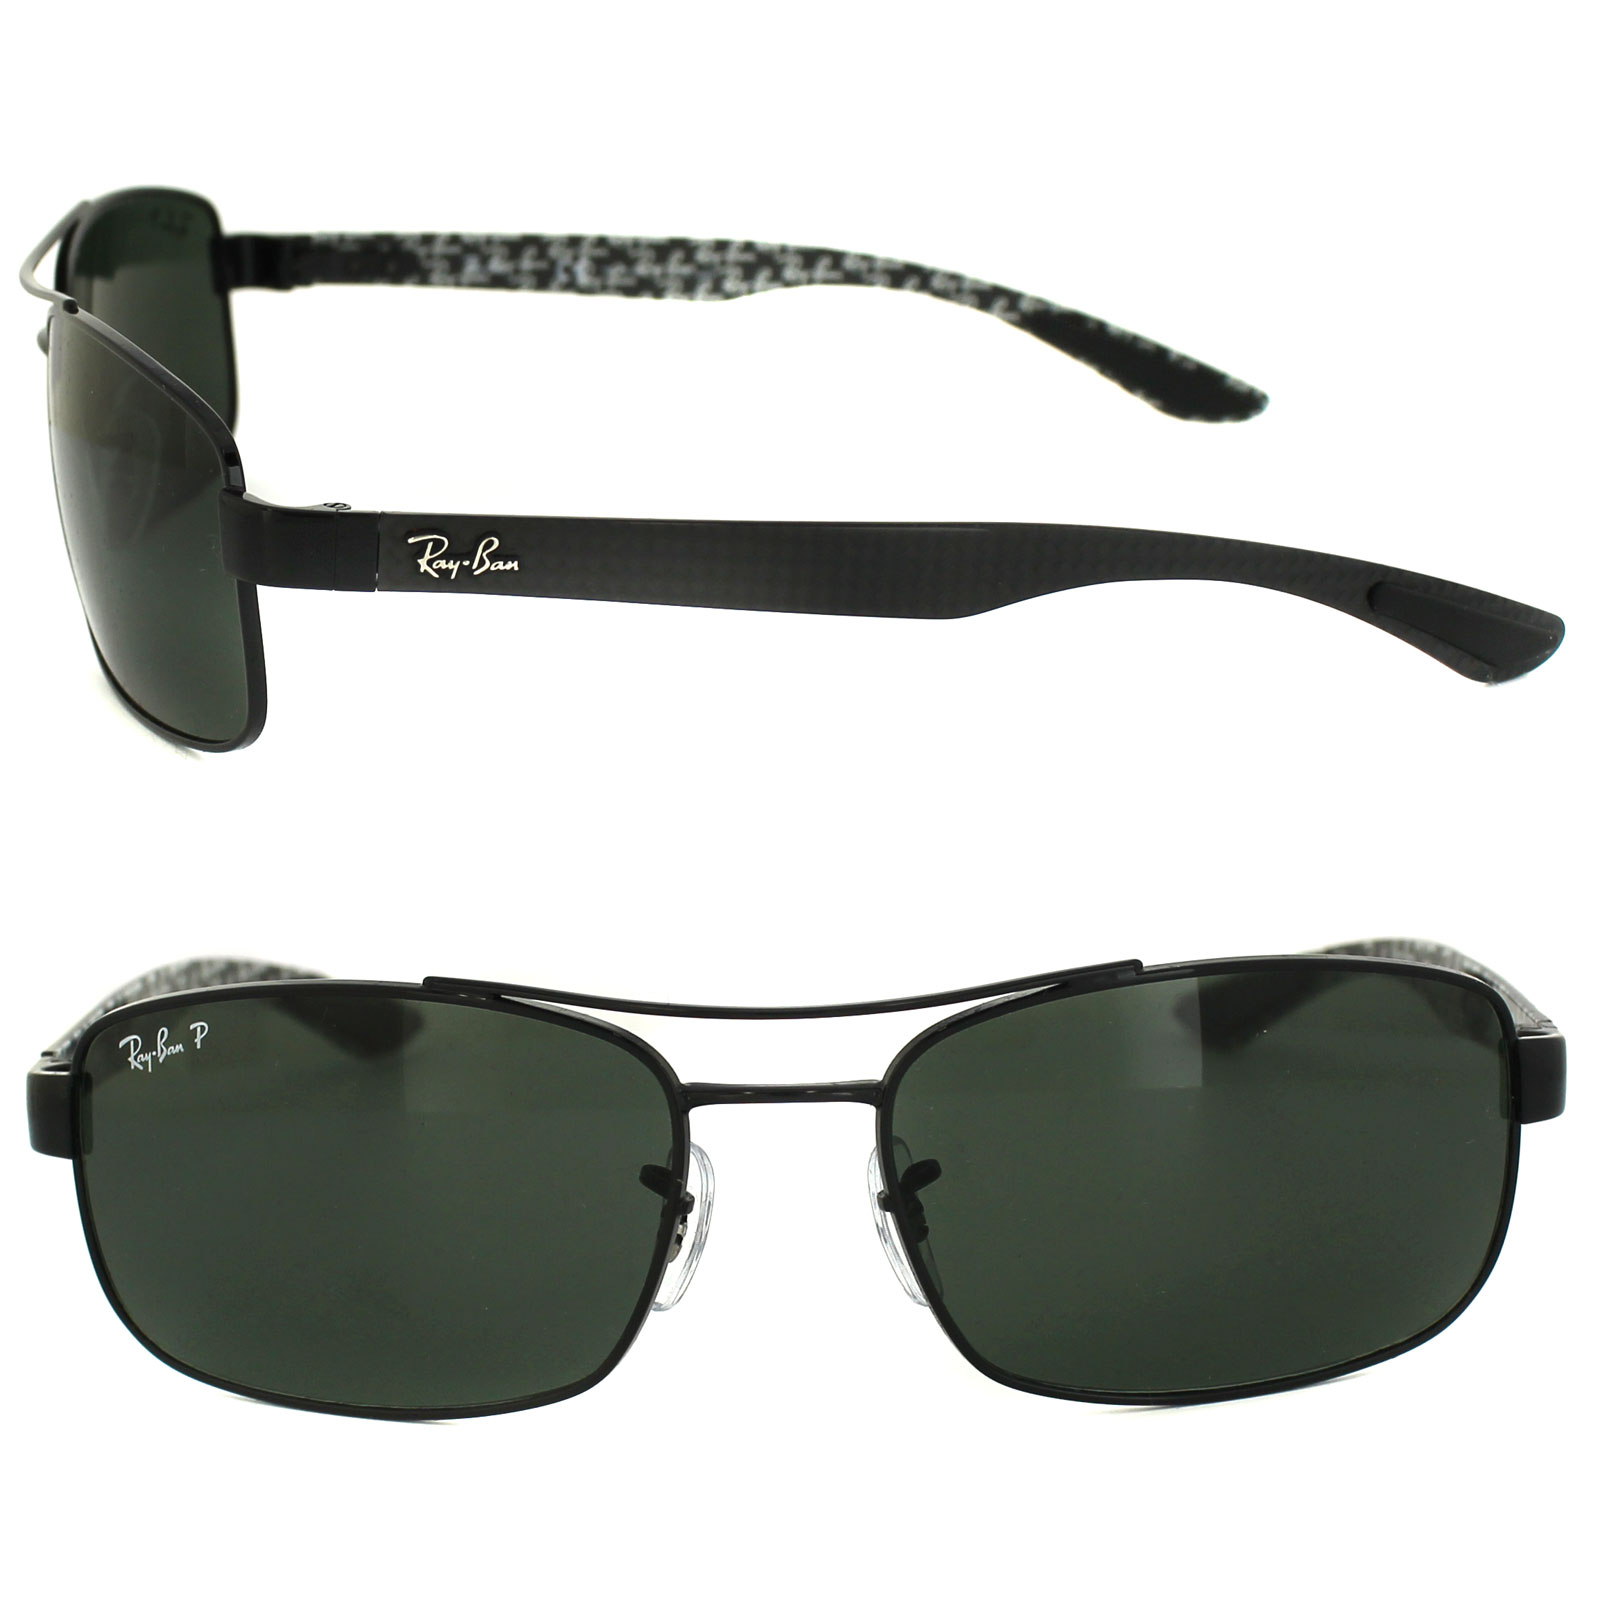 6a498d161d8 ... sweden sentinel ray ban sunglasses 8316 002 n5 black green polarized  dcc3f 7e46d